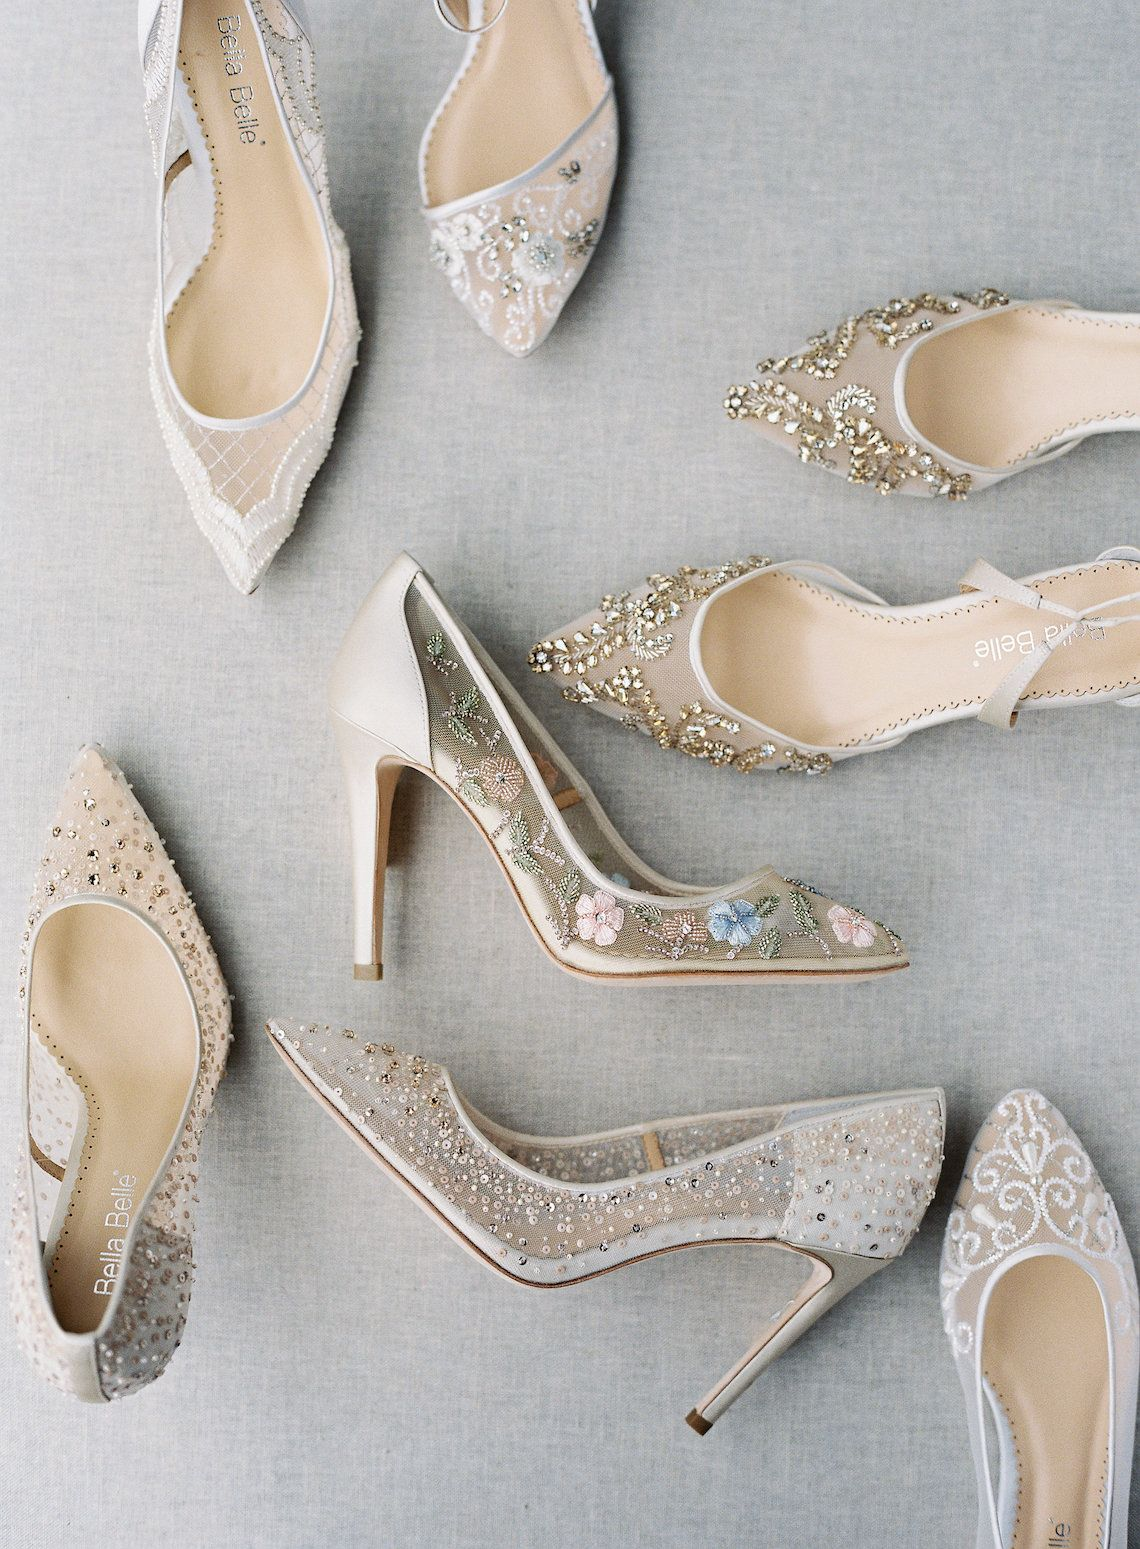 aa828ed89c29 8 Tips For Flawless Wedding Shoe Shopping - Bridal Musings